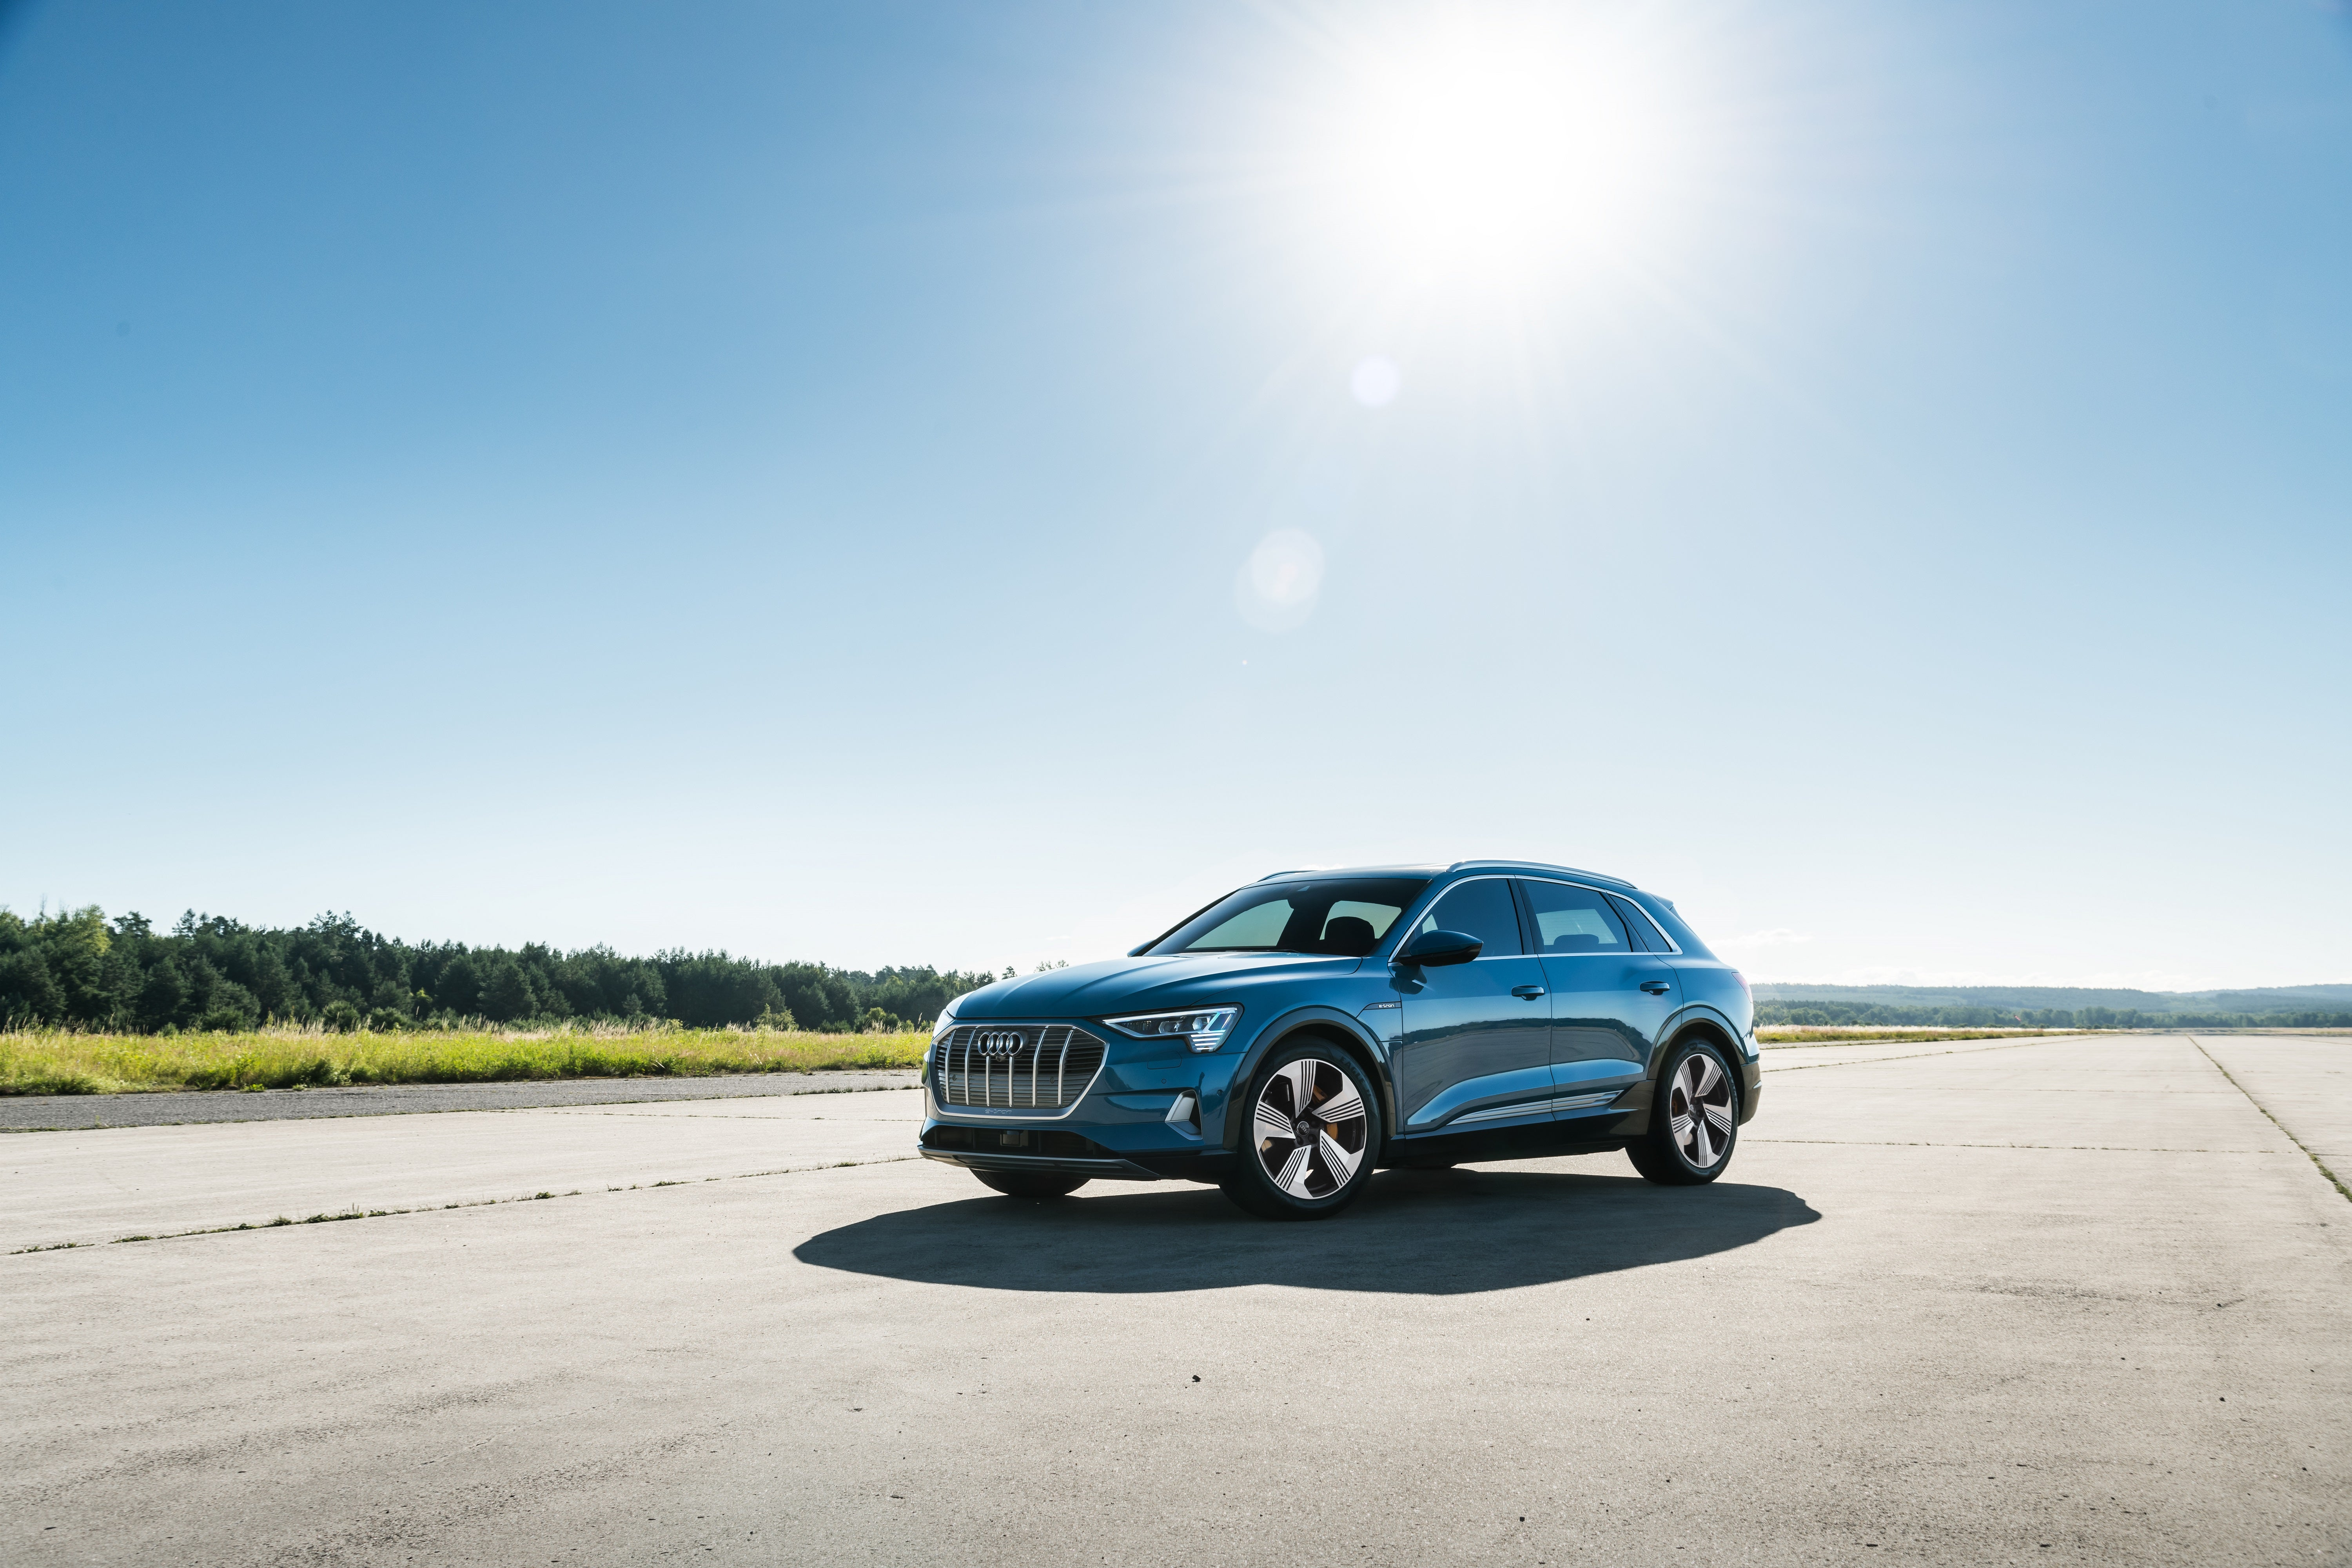 The all-new 2019 Audi e-tron electric SUV.